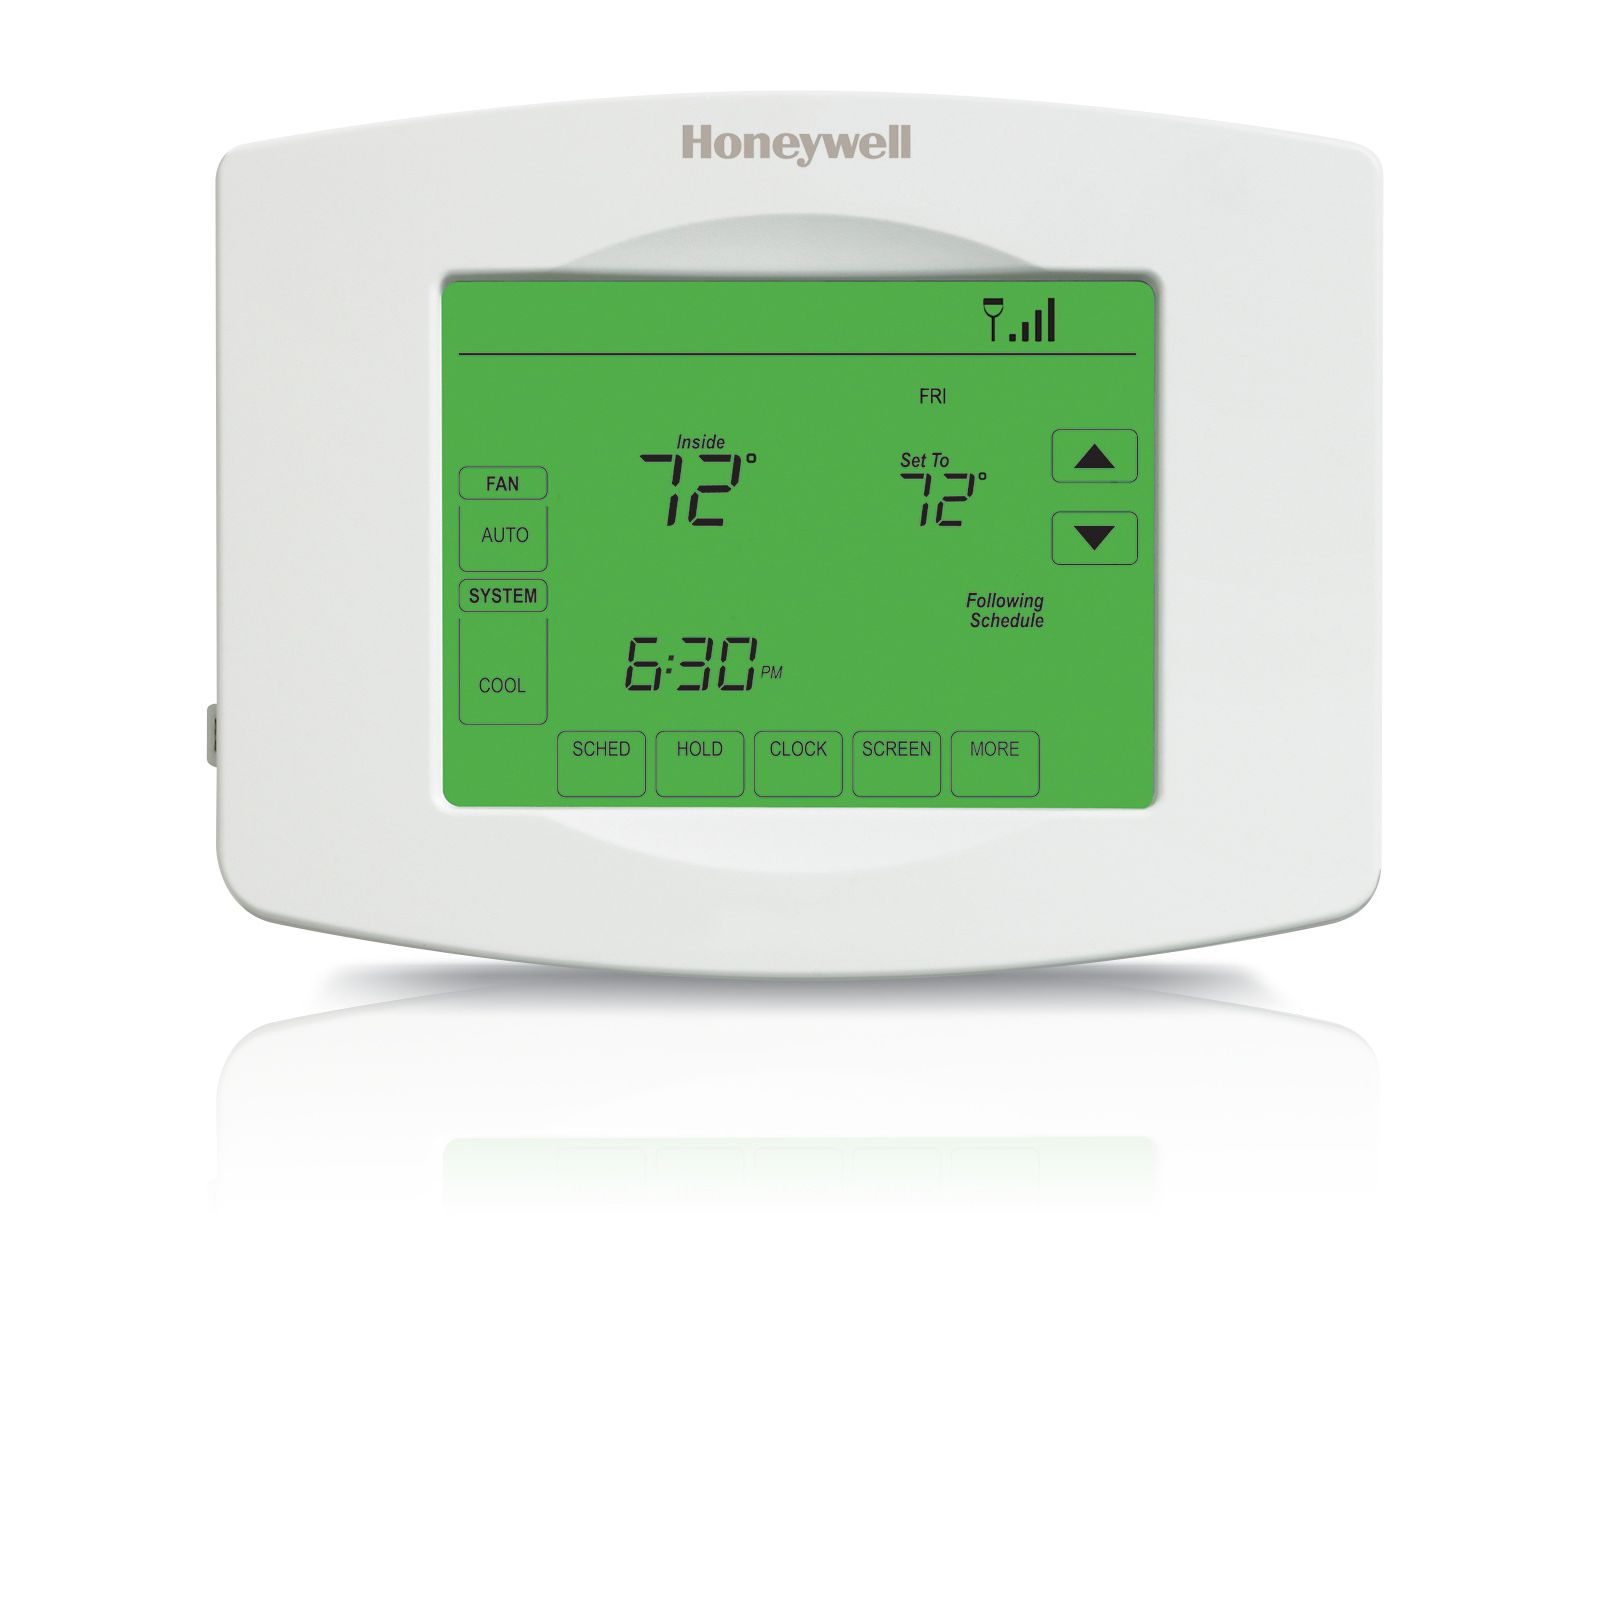 Honeywell TH8320WF1029 - Wi-Fi VisionPRO® 8000 Touchscreen  Programmable/Non-Programmable Thermostat